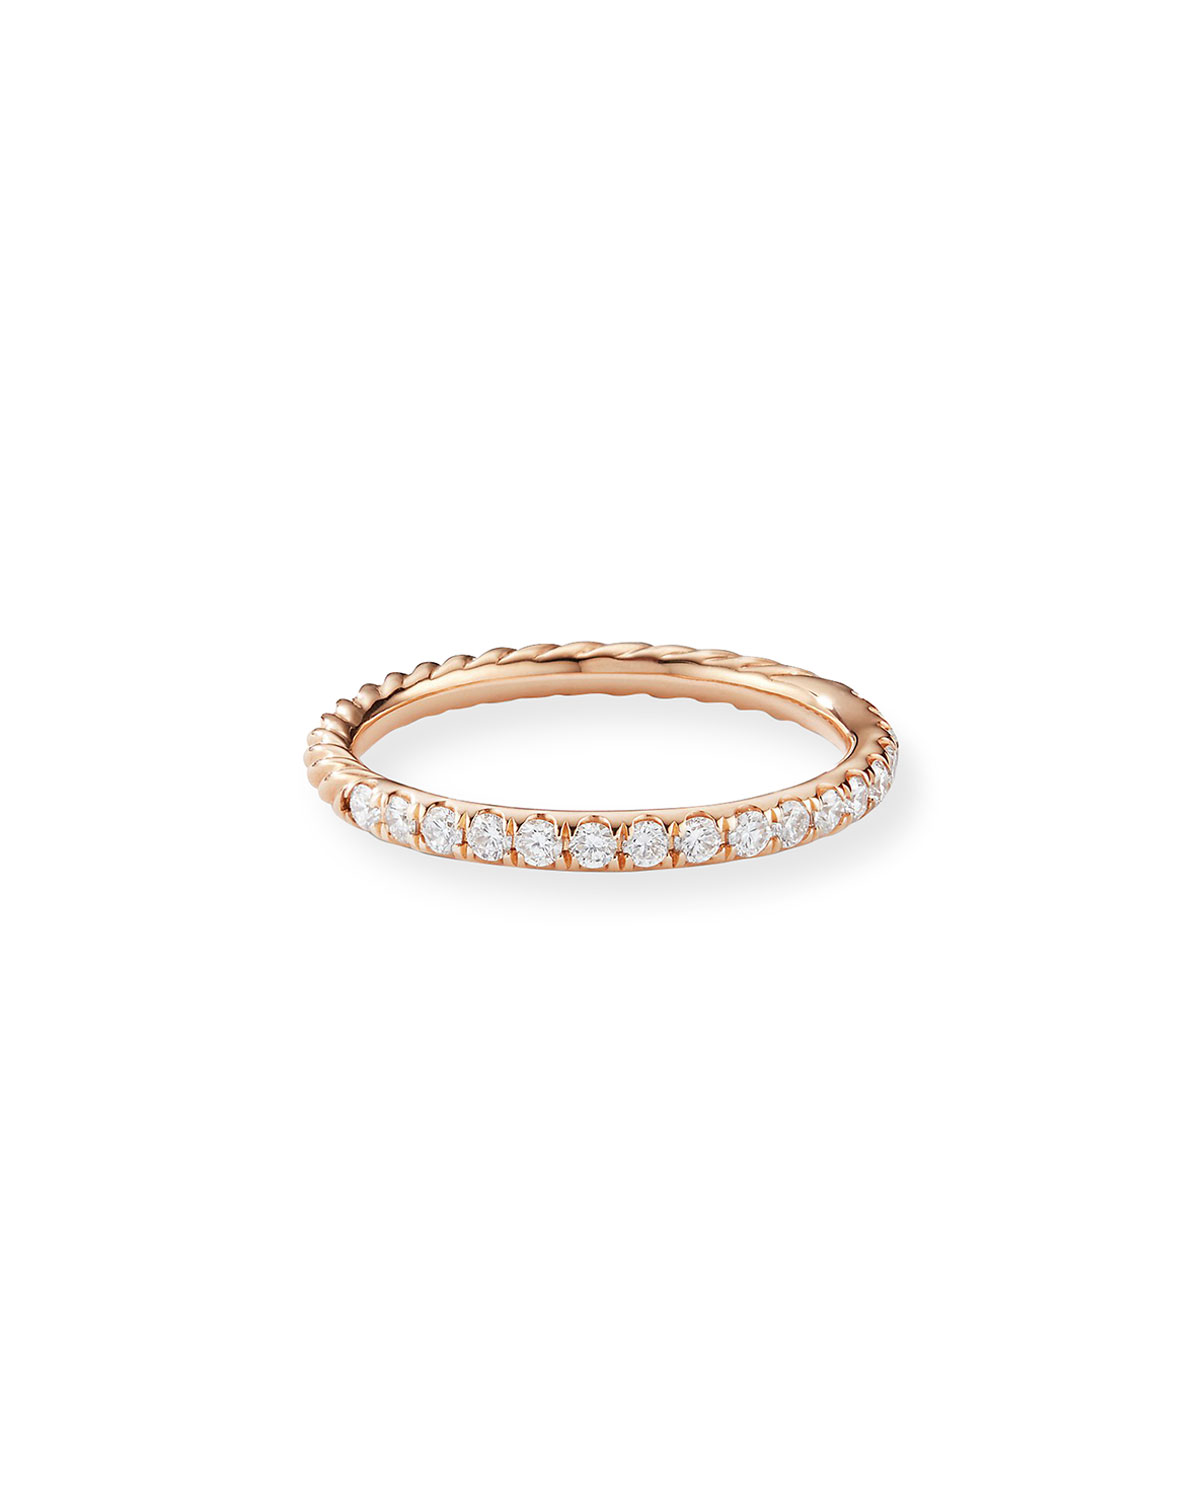 David Yurman Cable Collectibles Pave Diamond Band Ring in 18K Rose Gold, Size 8